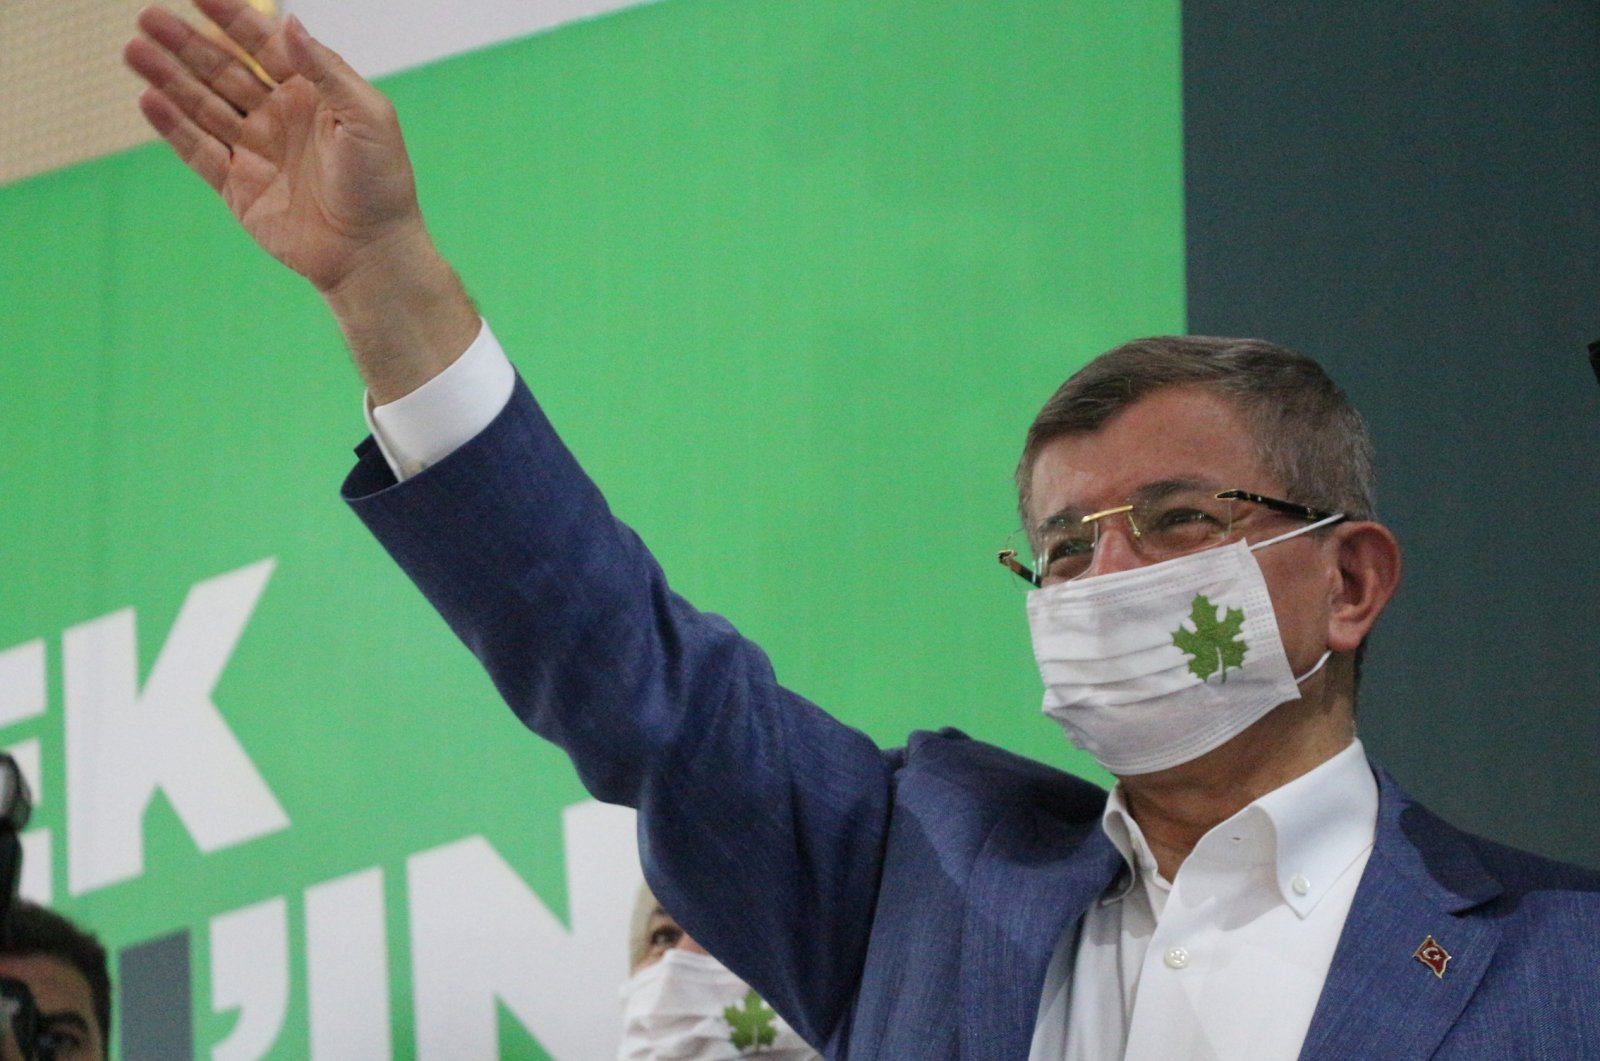 Future Party (GP) Chairman Ahmet Davutoğlu waves to the audience during his party's provincial congress in the eastern city of Batman, Turkey, July 25, 2020. (DHA Photo)